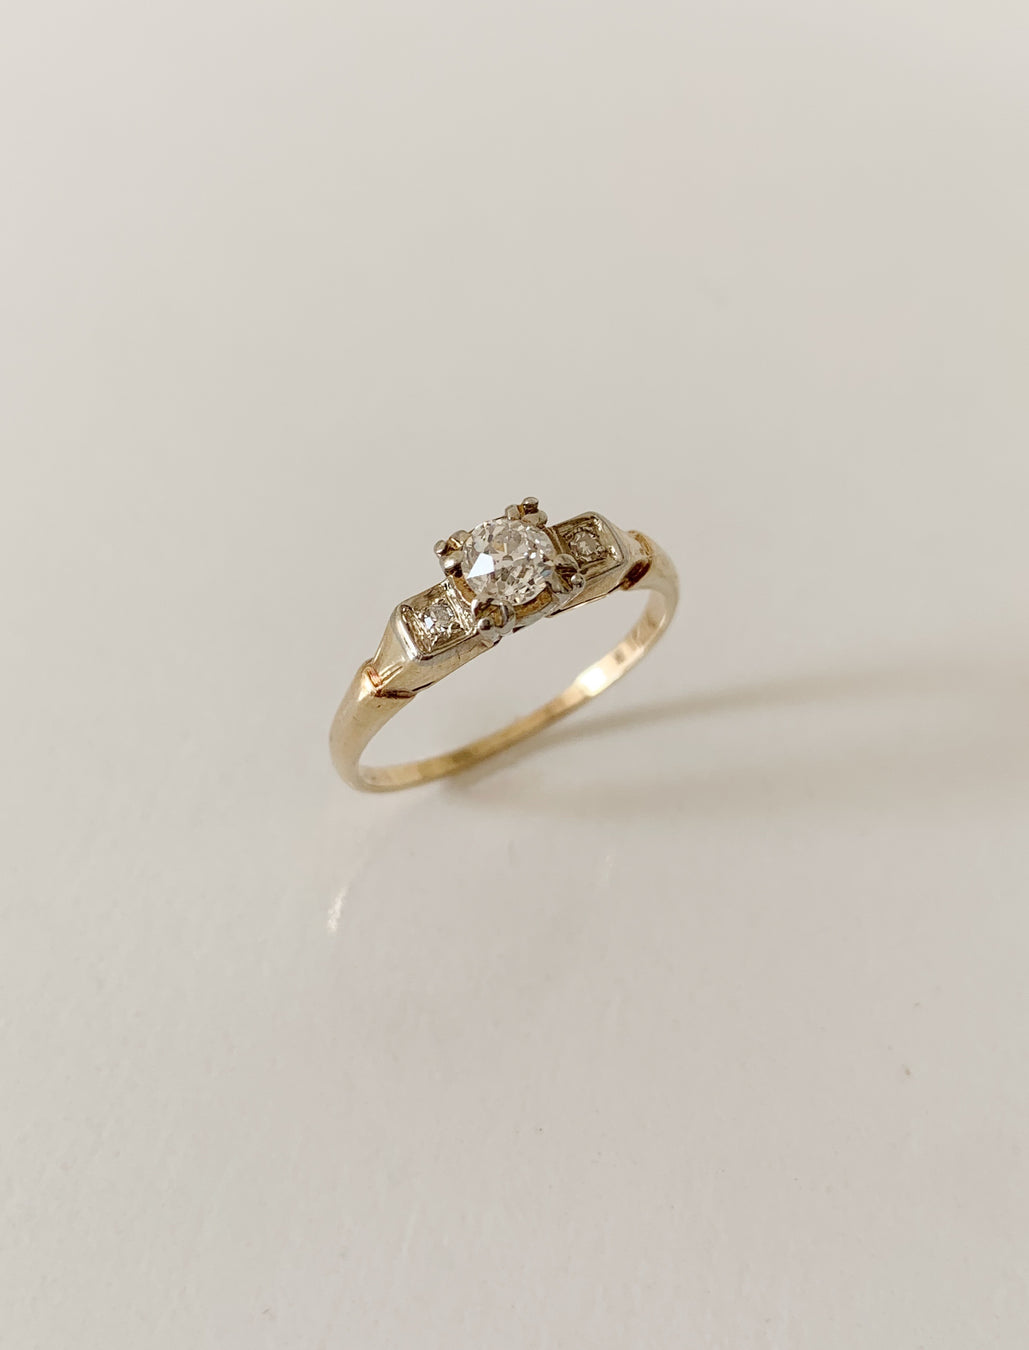 14k Old Mine Cut Diamond Ring